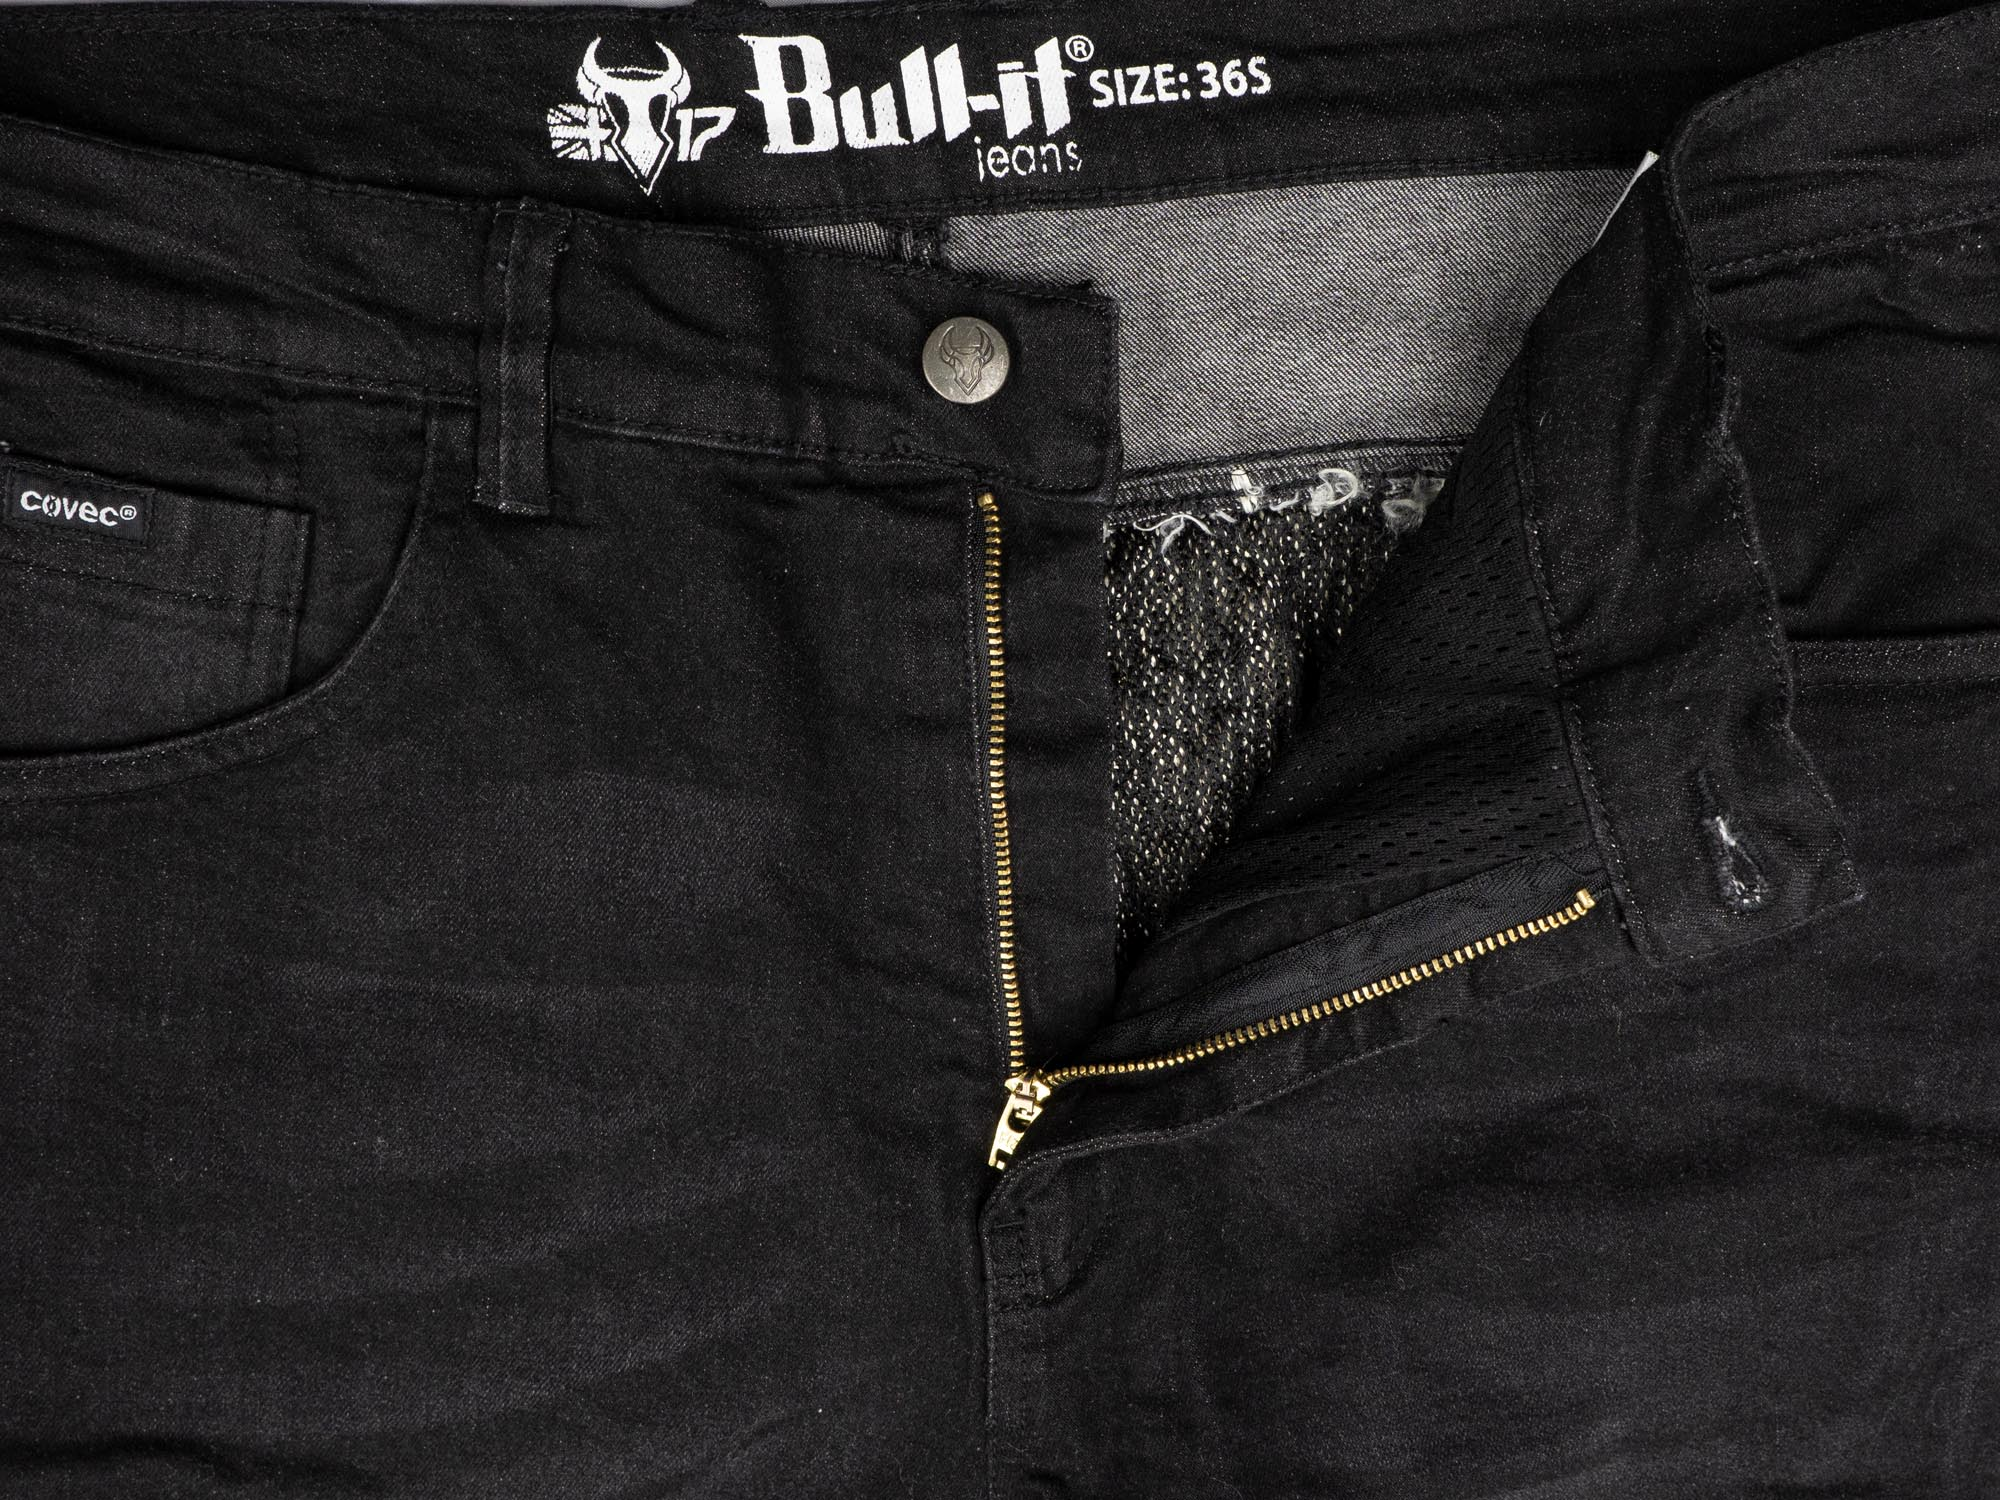 Bull-it SP120 Lite Heritage Slim Fit Jeans front zipper and metal button